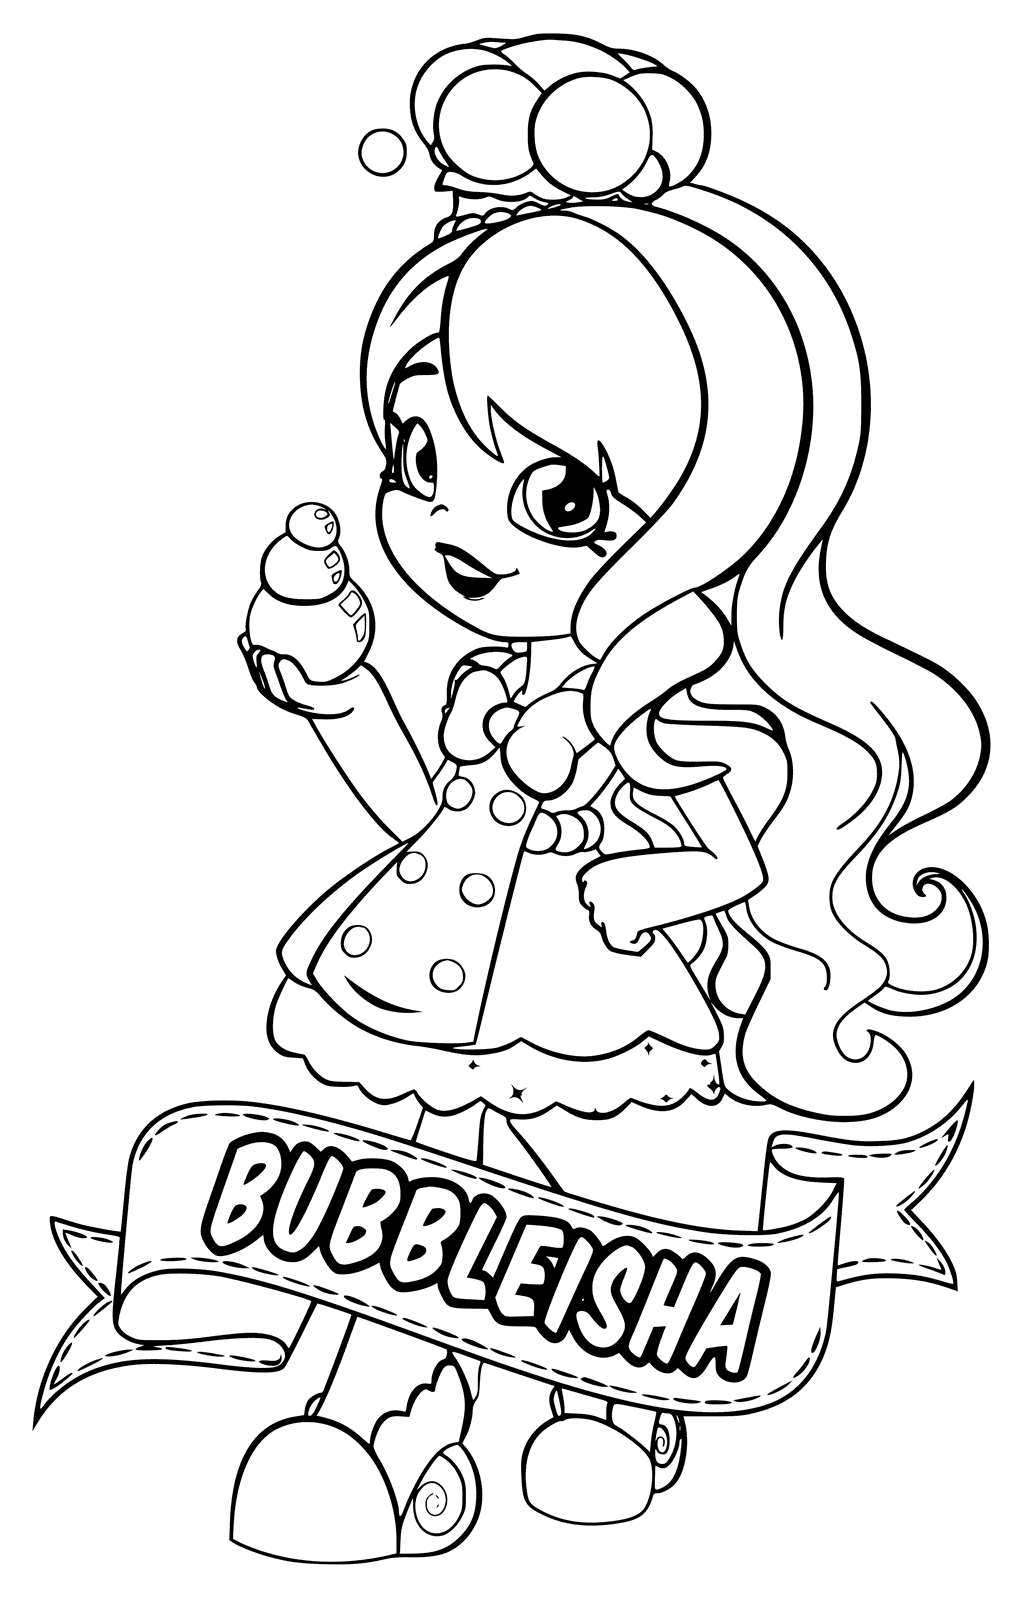 1024x1600 Shopkins Shoppies Bubbleisha From Chef Club Coloring Page